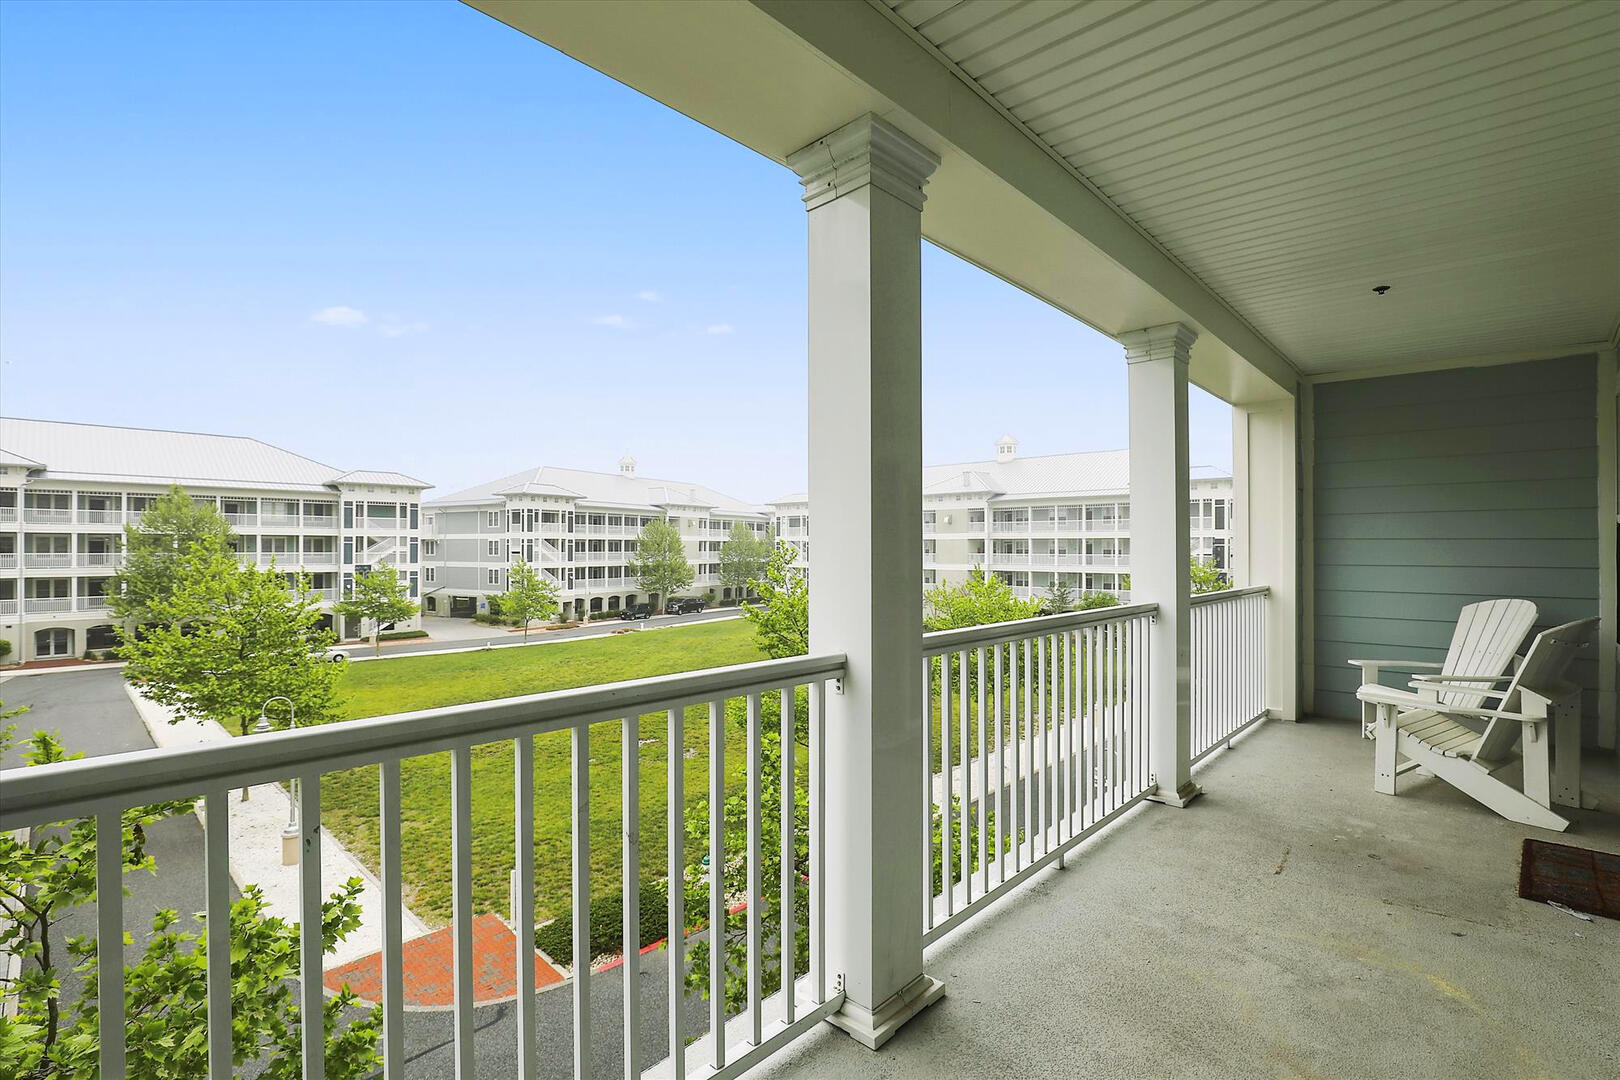 Balcony of 37 Fountain Dr. W 3C in Sunset Island